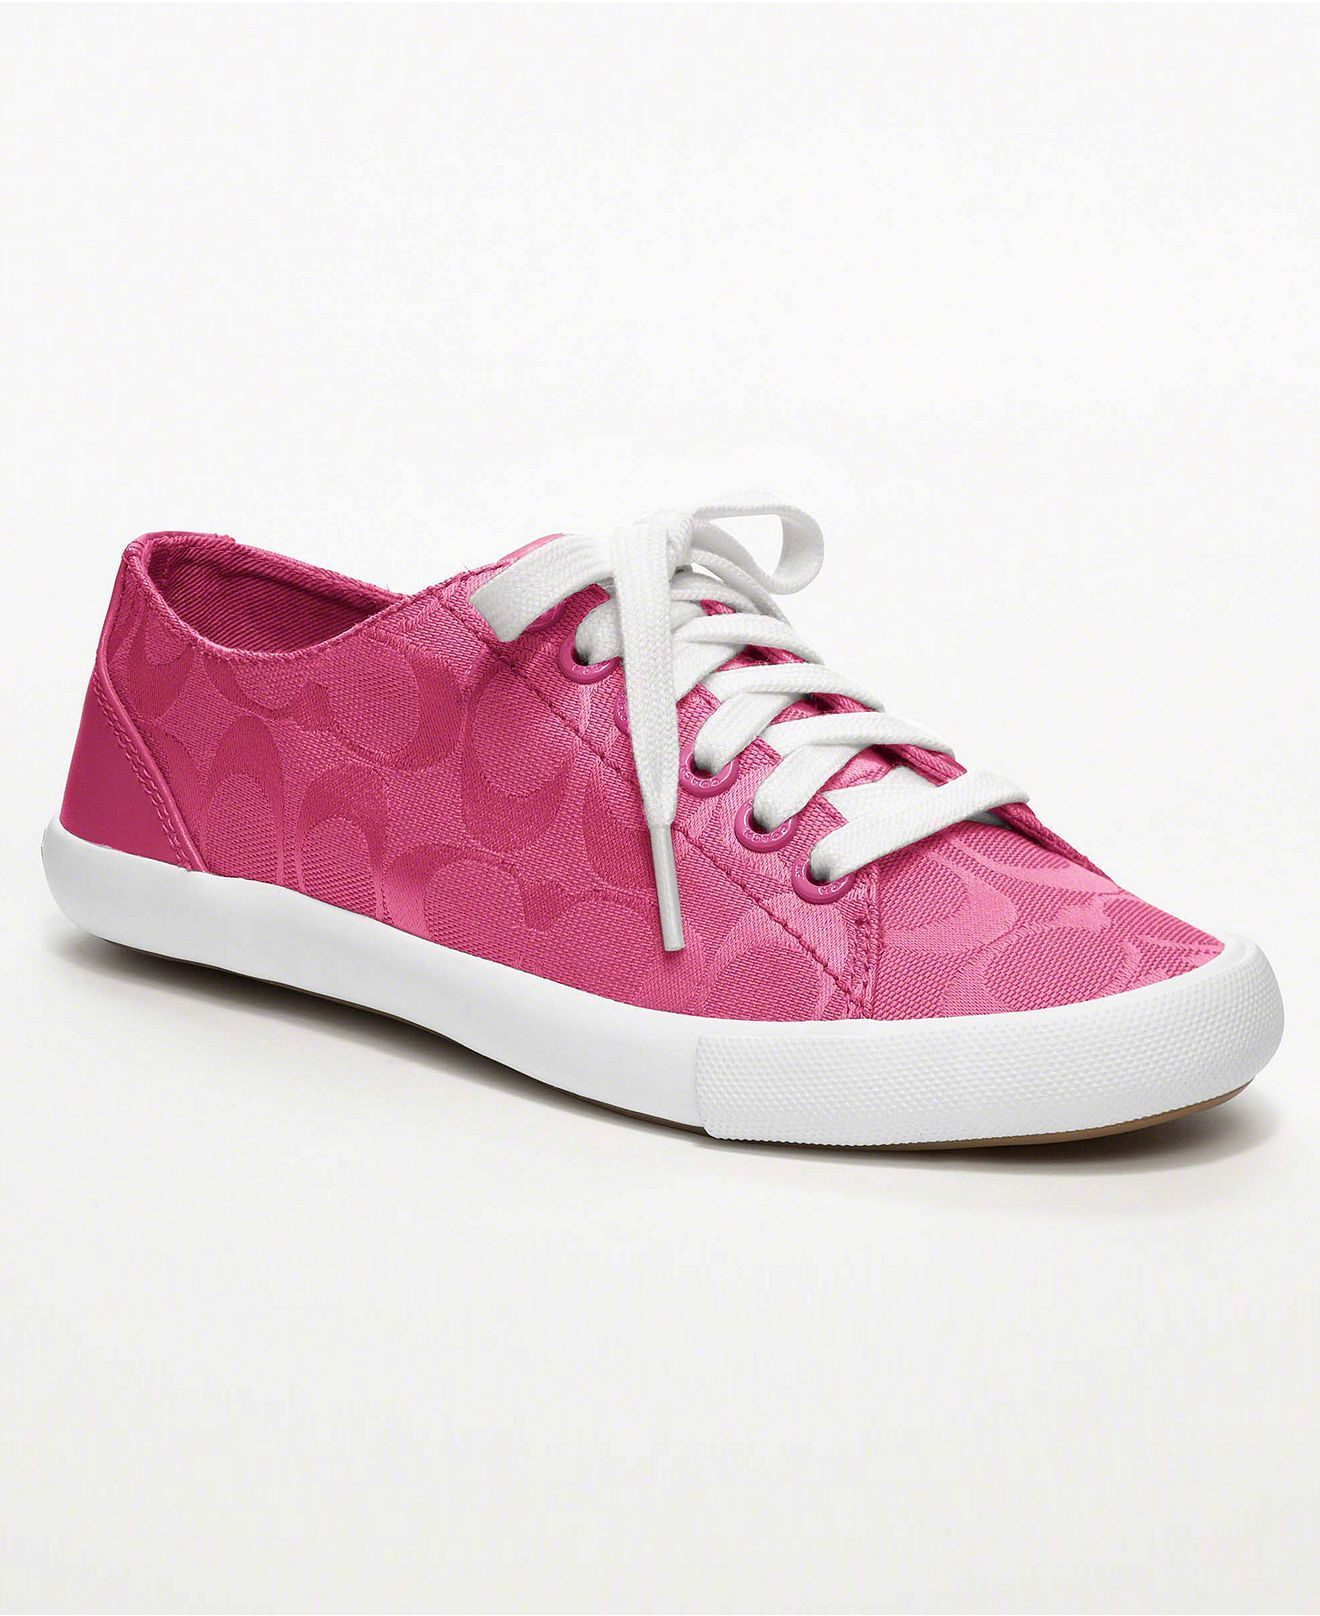 269f5ed4c55 Pink coach sneaker- I want it.